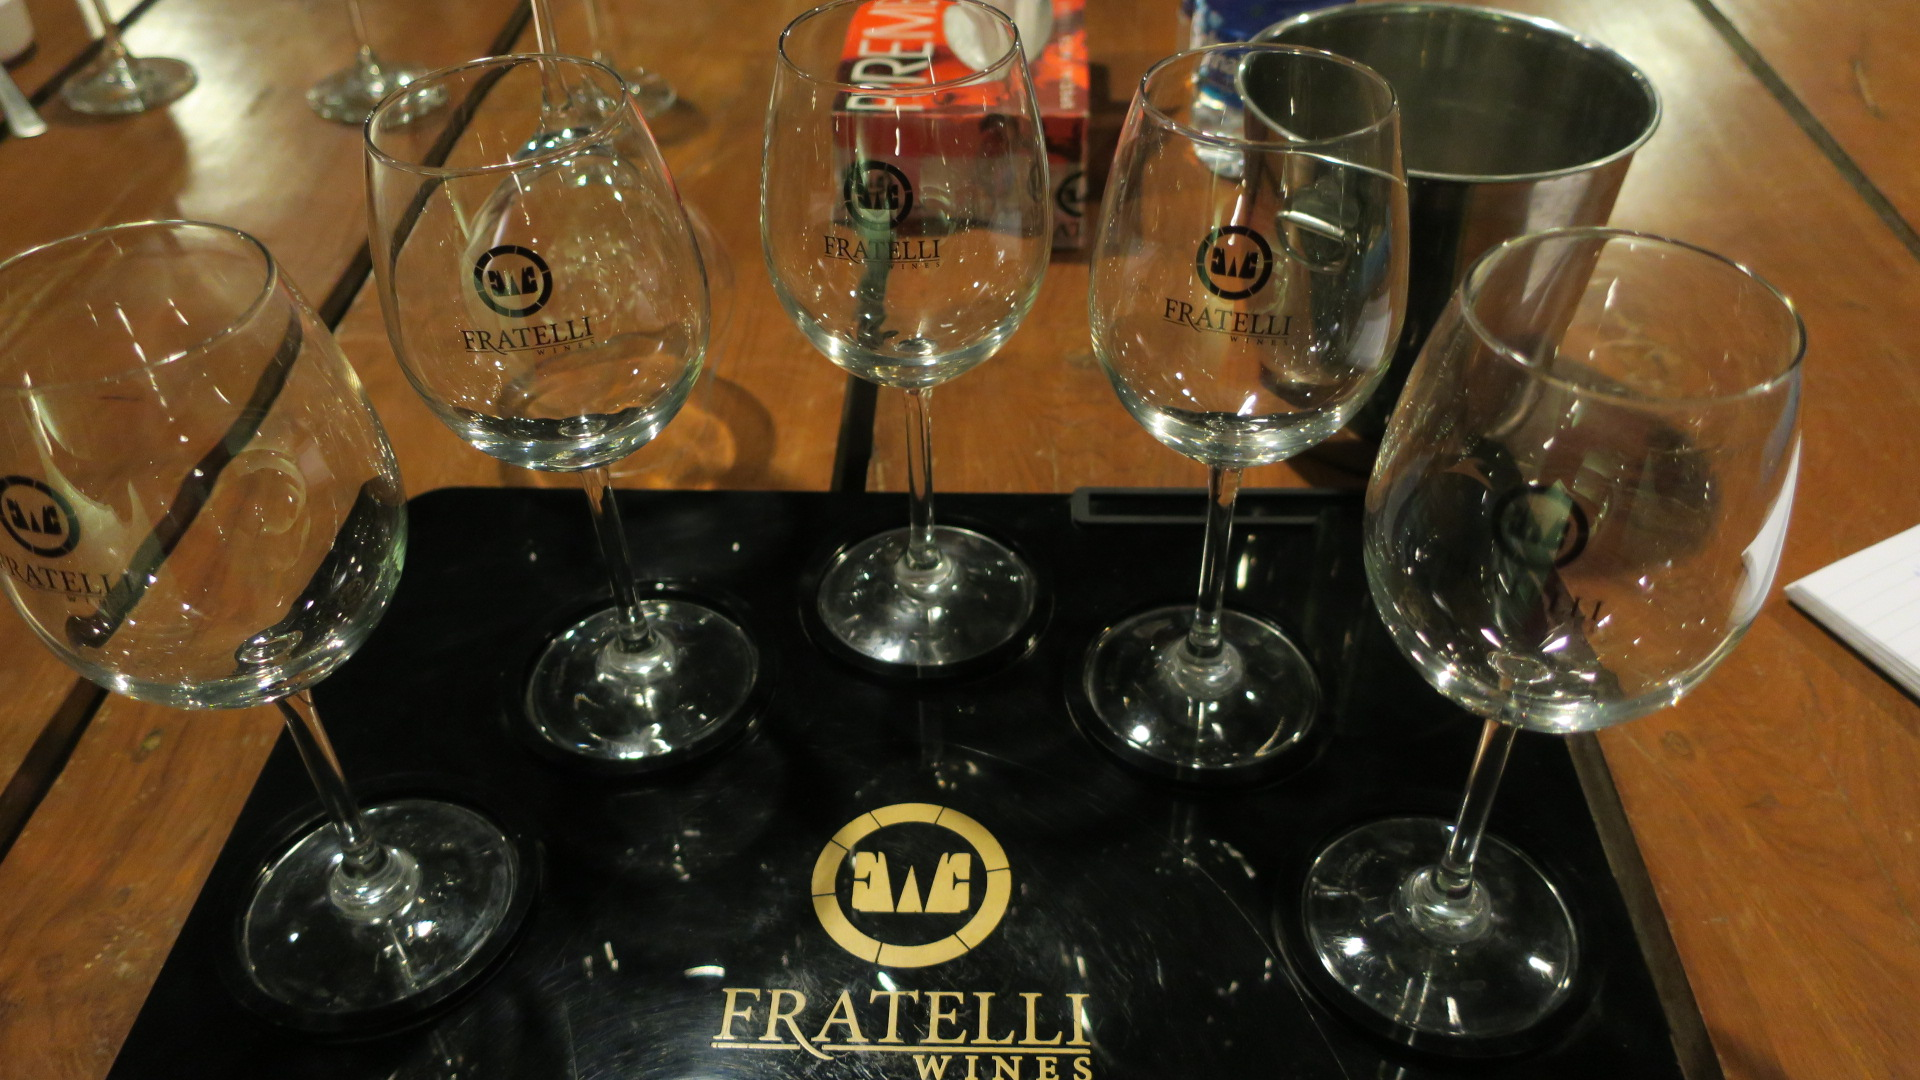 We are ready for the pour. Starting my tastings at Fratelli (Photo: Sumi Sarma)